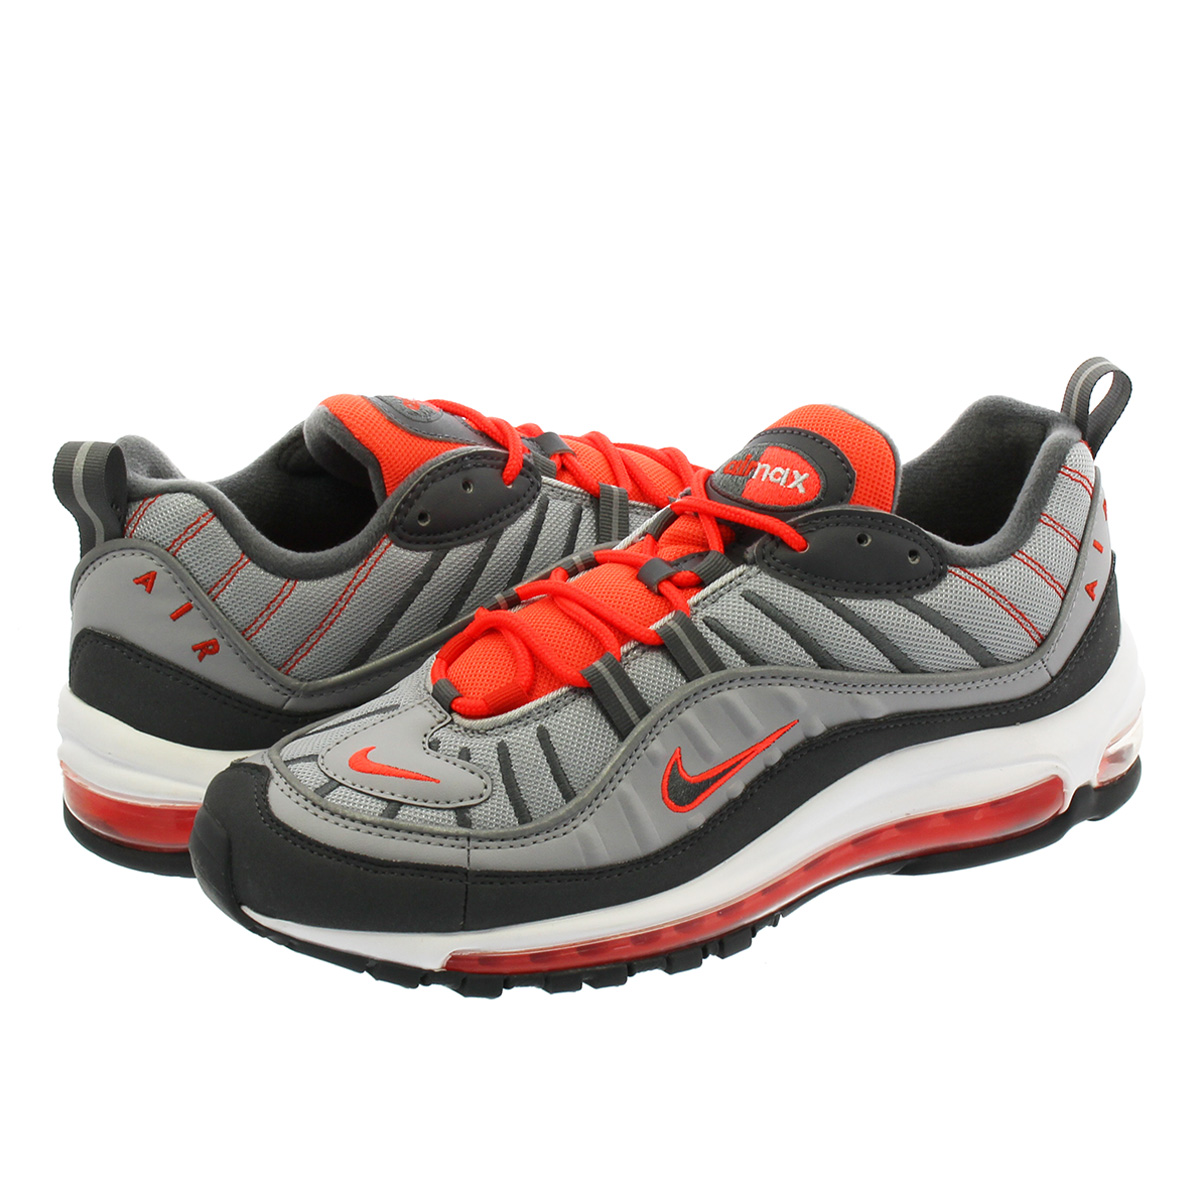 【お買い物マラソンSALE】 NIKE AIR MAX 98 ナイキ エア マックス 98 WOLF GREY/DARK GREY/TOTAL CRIMSON/HABANERO RED/WHITE